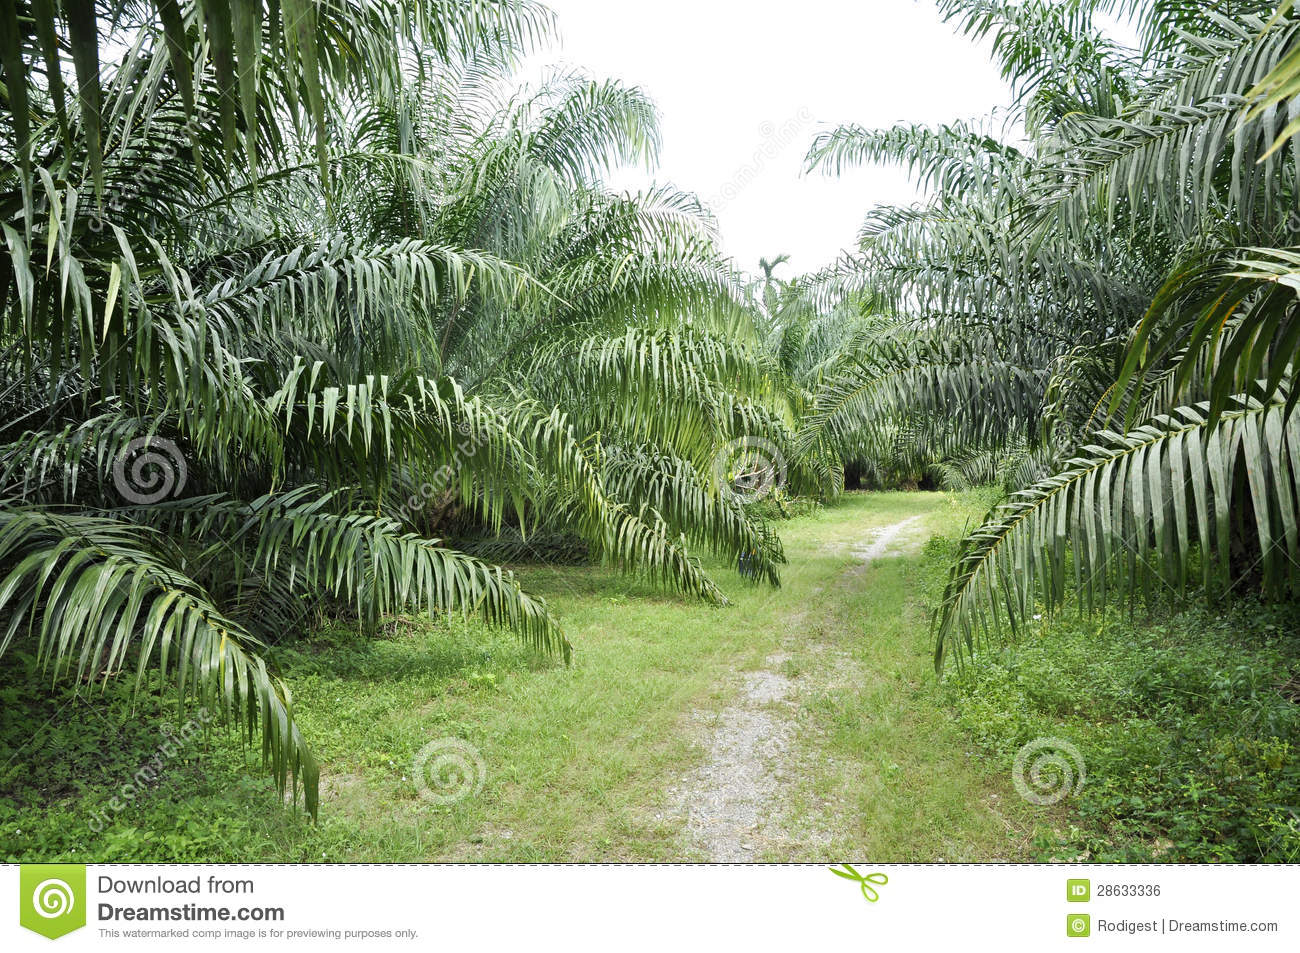 palm outdoor farm crop way royalty free stock image image 28633336